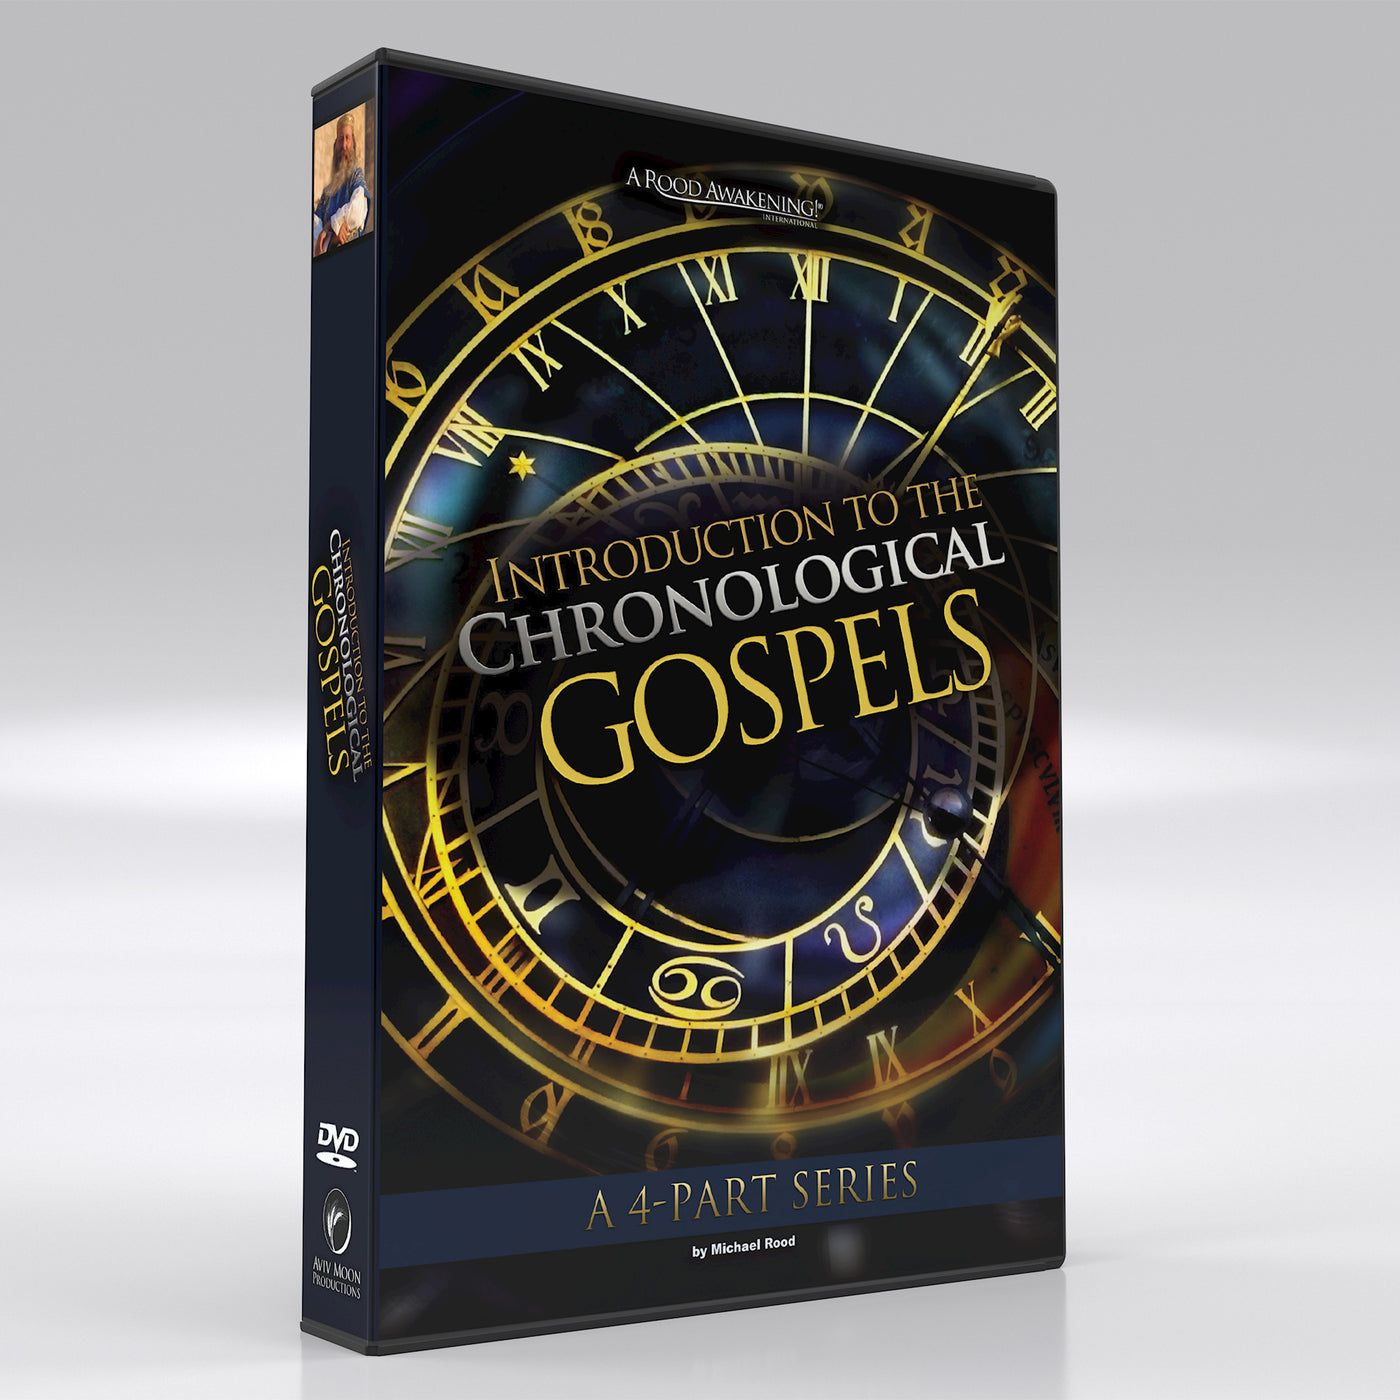 Introduction To The Chronological Gospels 4-DVD Set